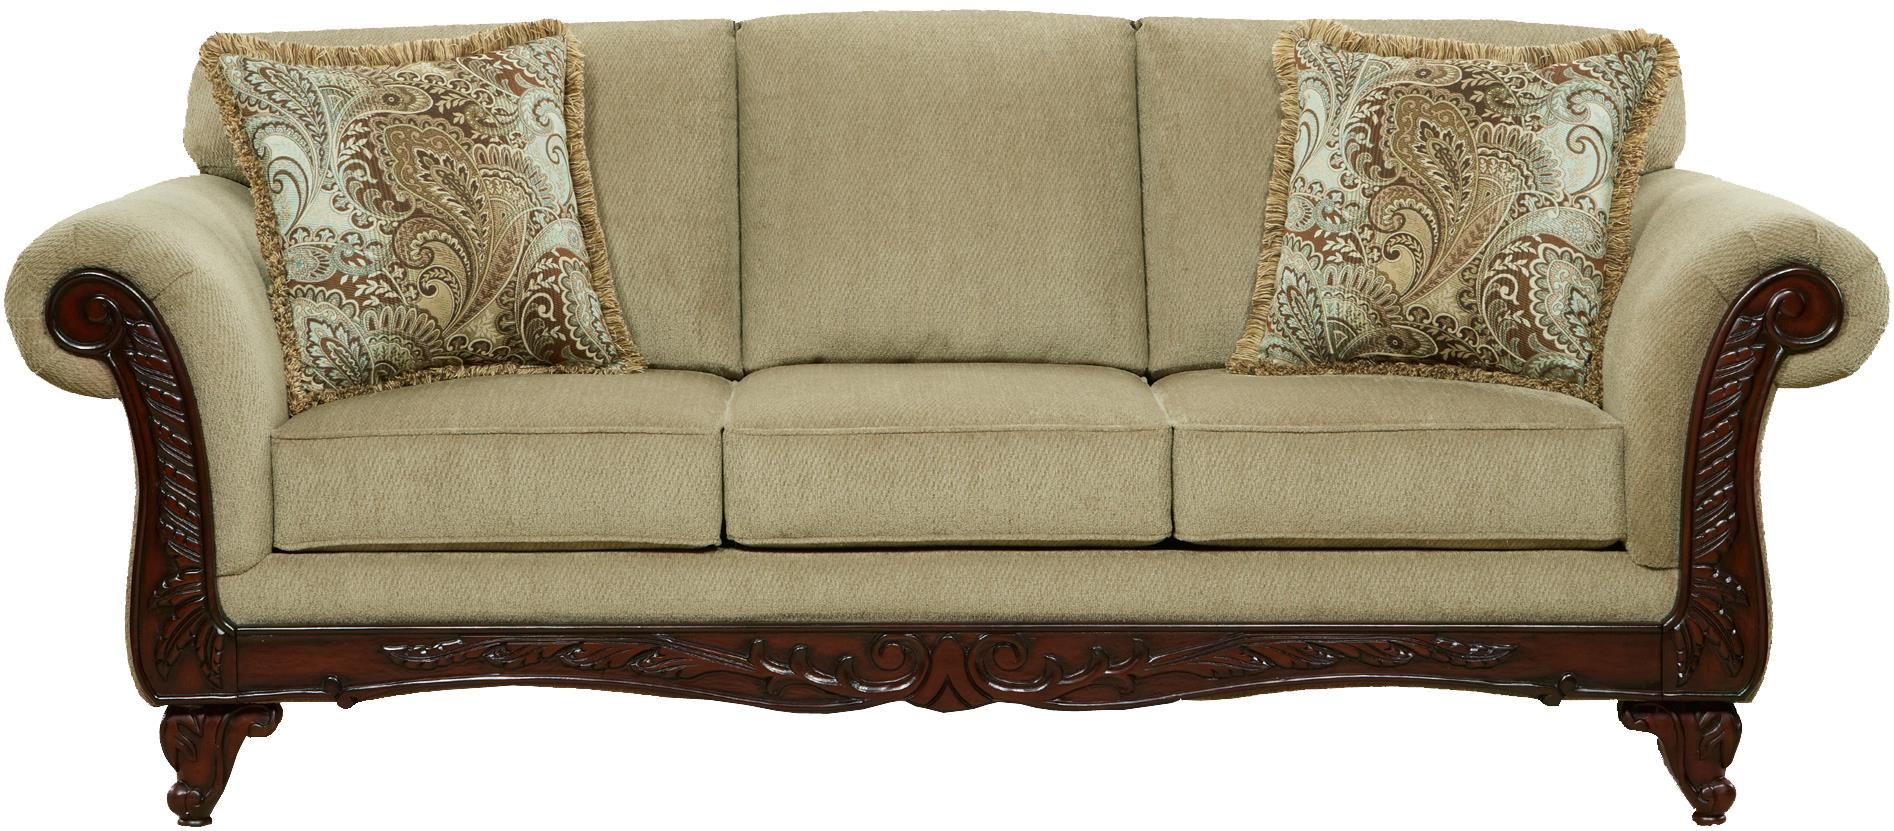 Superieur Affordable Furniture 8500 Traditional Sofa   Item Number: 8503 Ashanti  Platinum